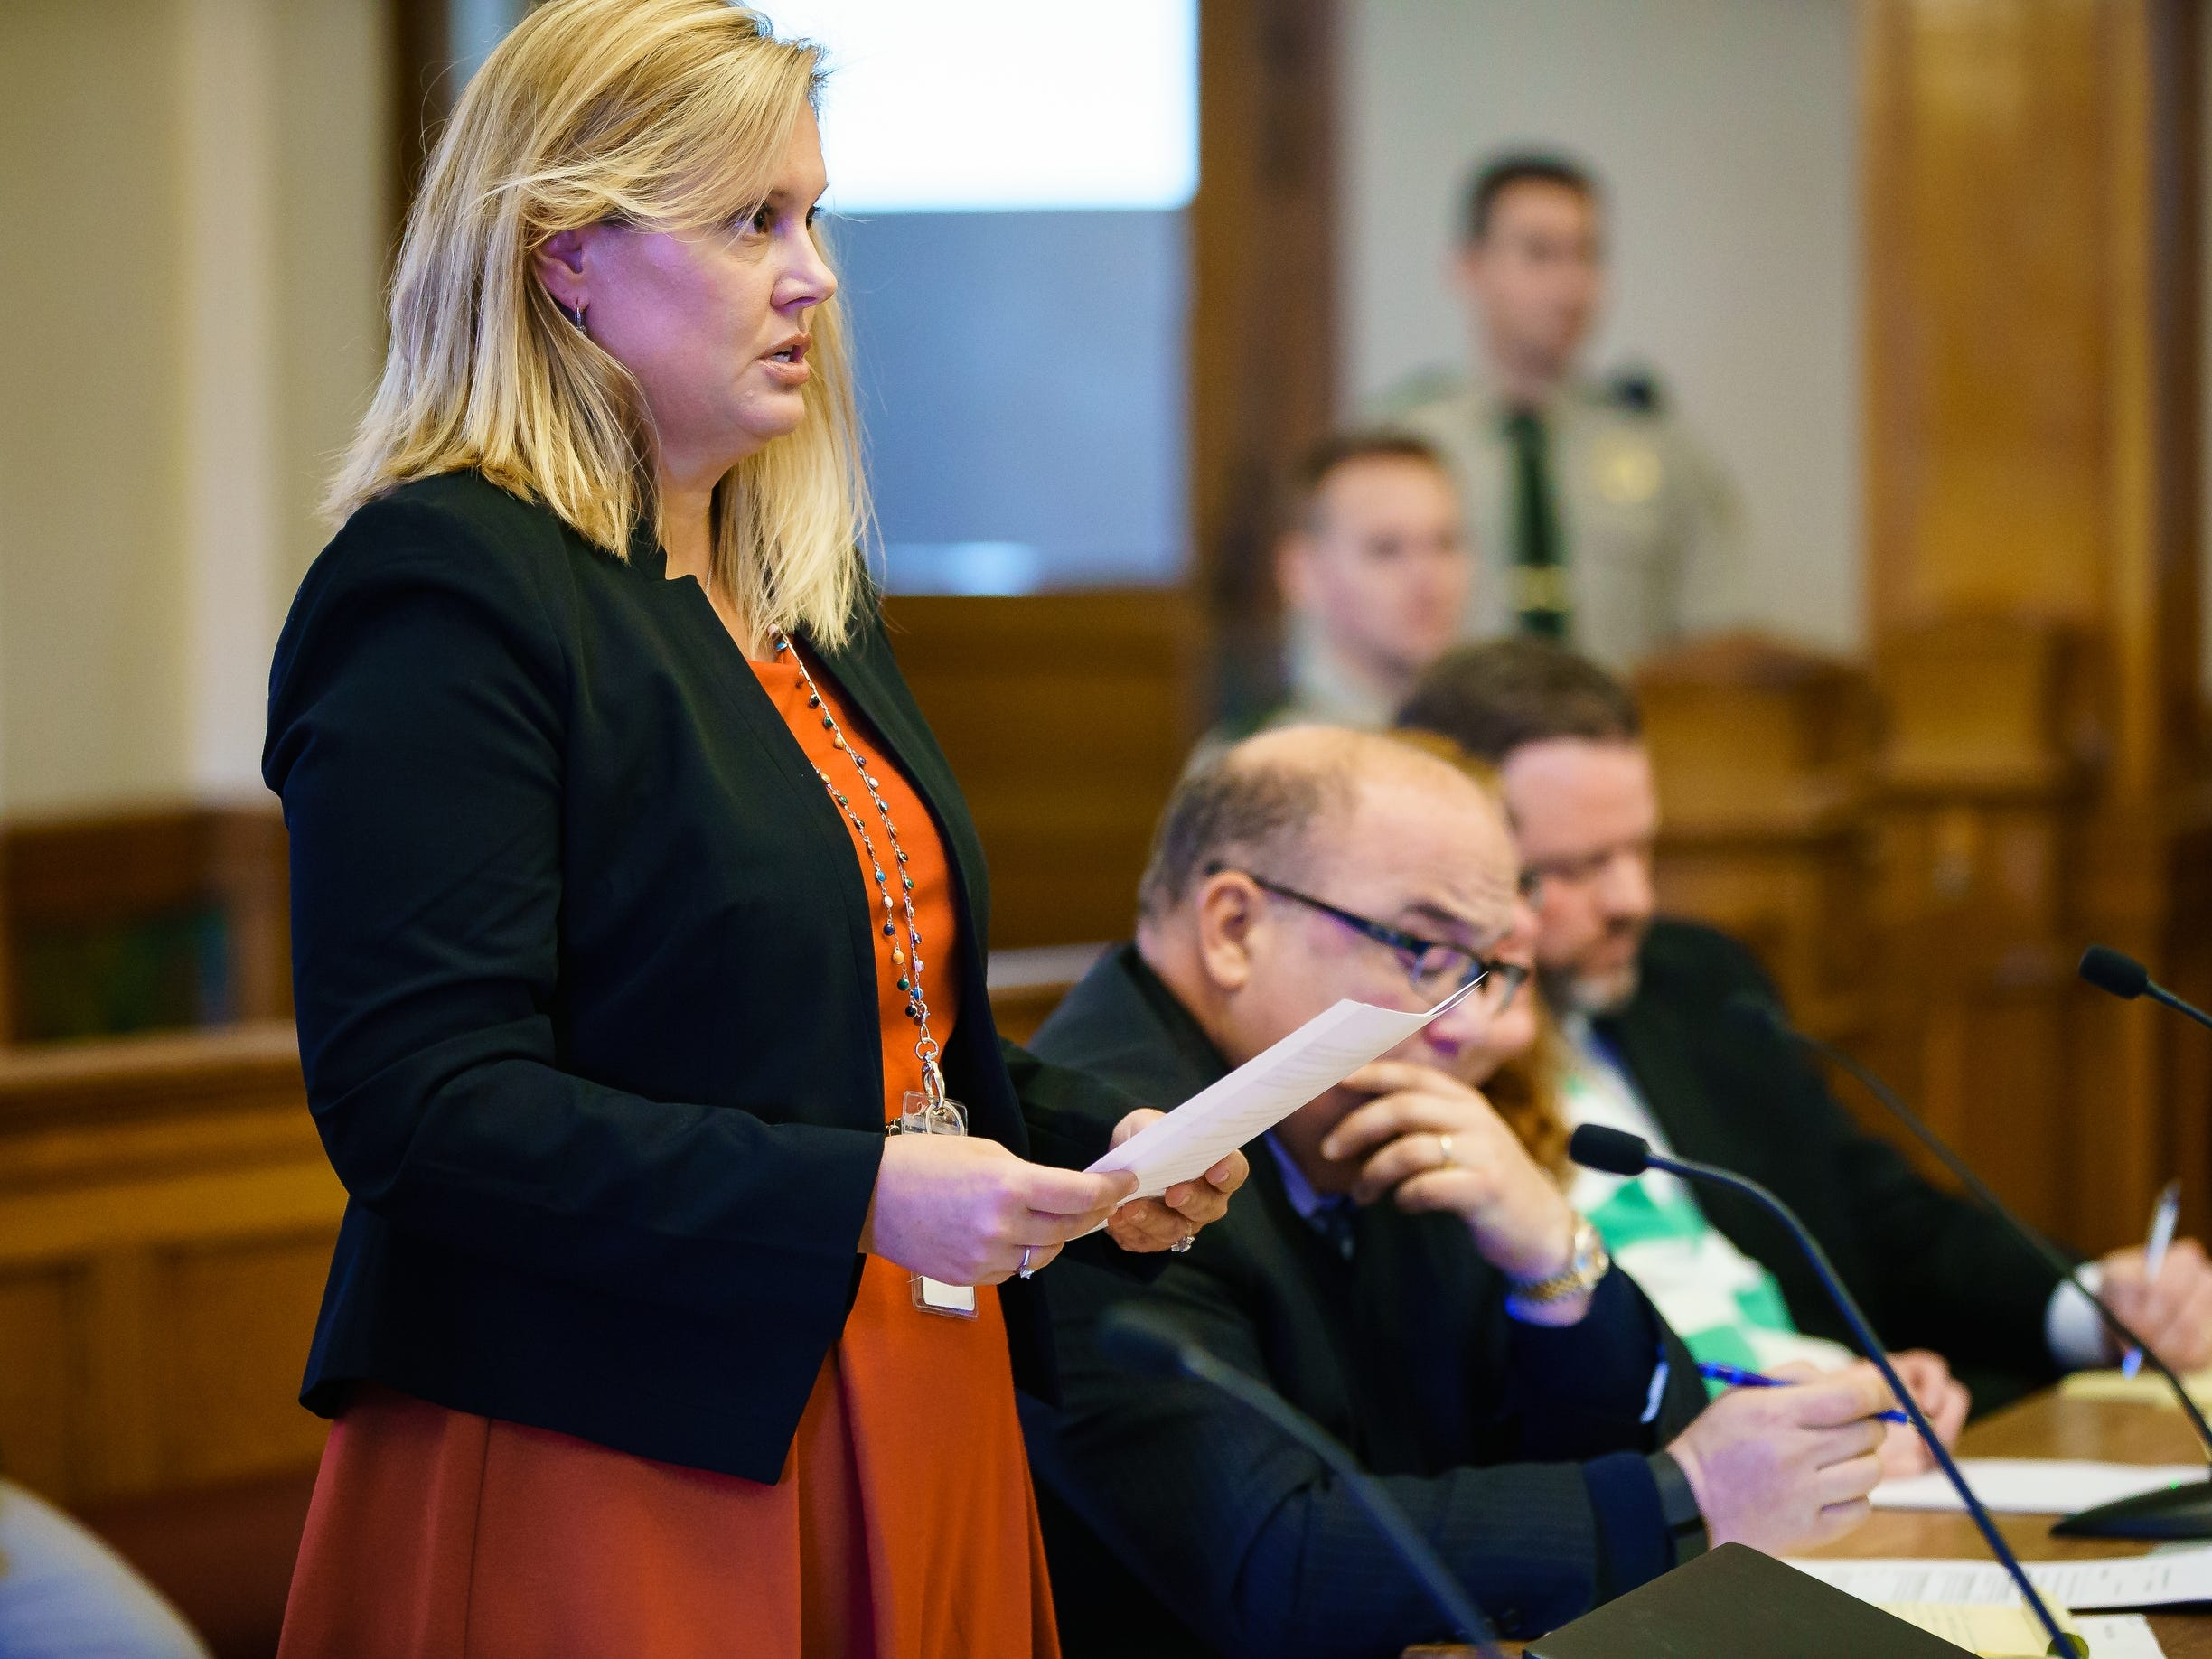 Assistant Dallas County Attorney Stacey Ritchie speaks during a plea hearing for Misty Ray at the Dallas County Courthouse on Wednesday, Jan. 9, 2019, in Adel. Ray entered a guilty plea to three kidnapping charges.